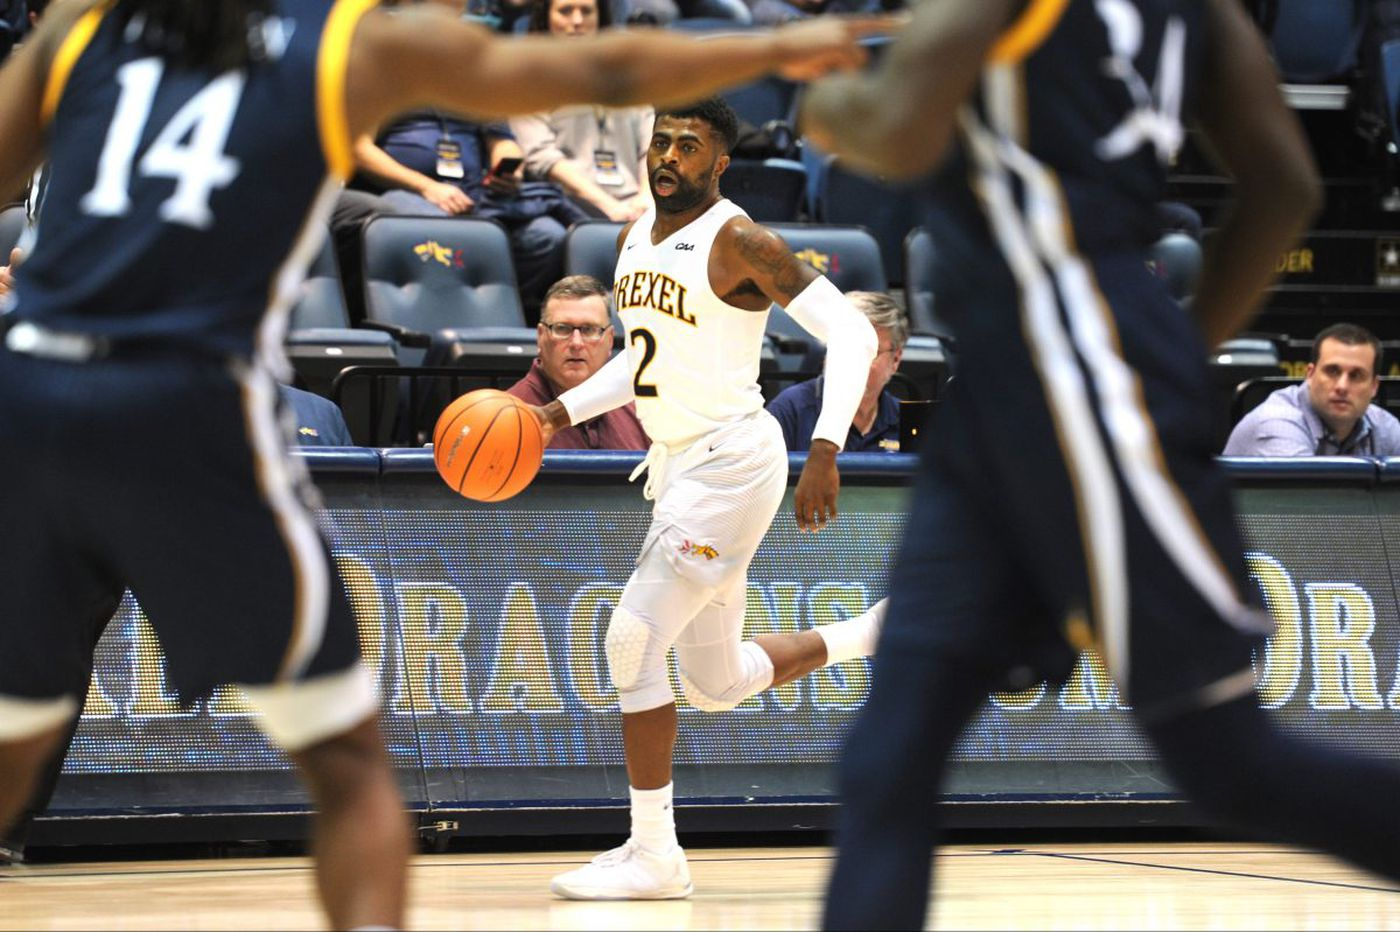 Tramaine Isabell leaving Drexel after graduating, Dave Beatty going to La Salle